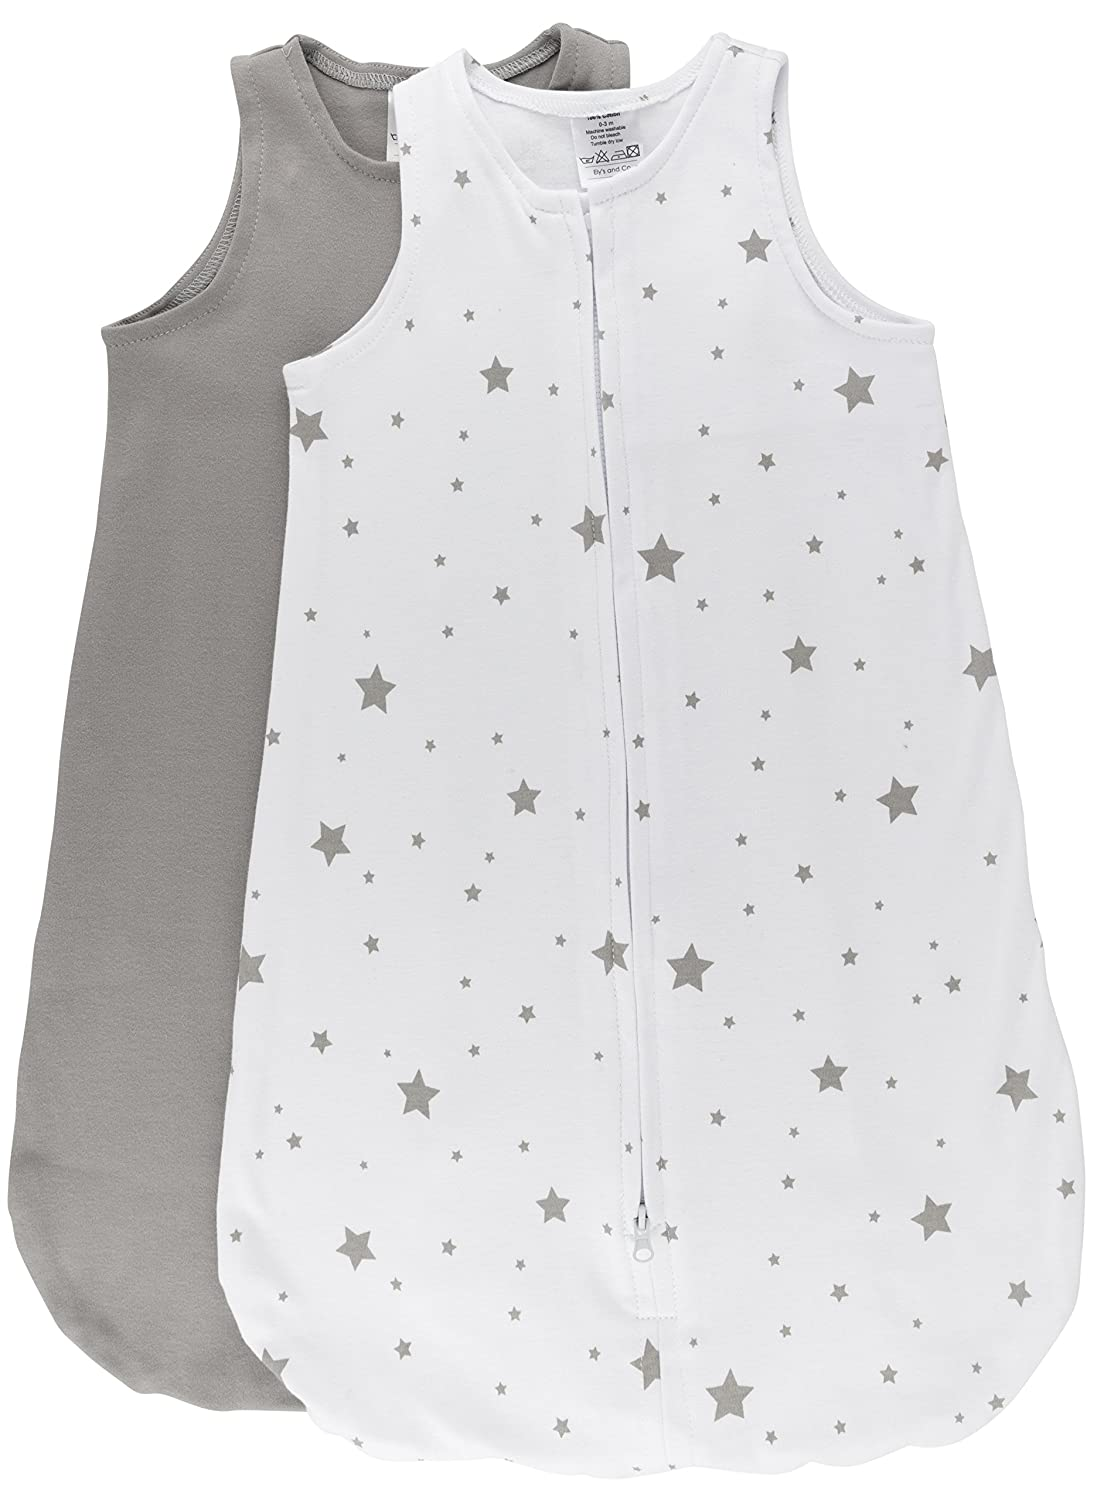 Ely's & Co.100% Cotton Wearable Blanket Baby Sleep Bag 2 Pack Grey Stars 6-12 Months: Home & Kitchen